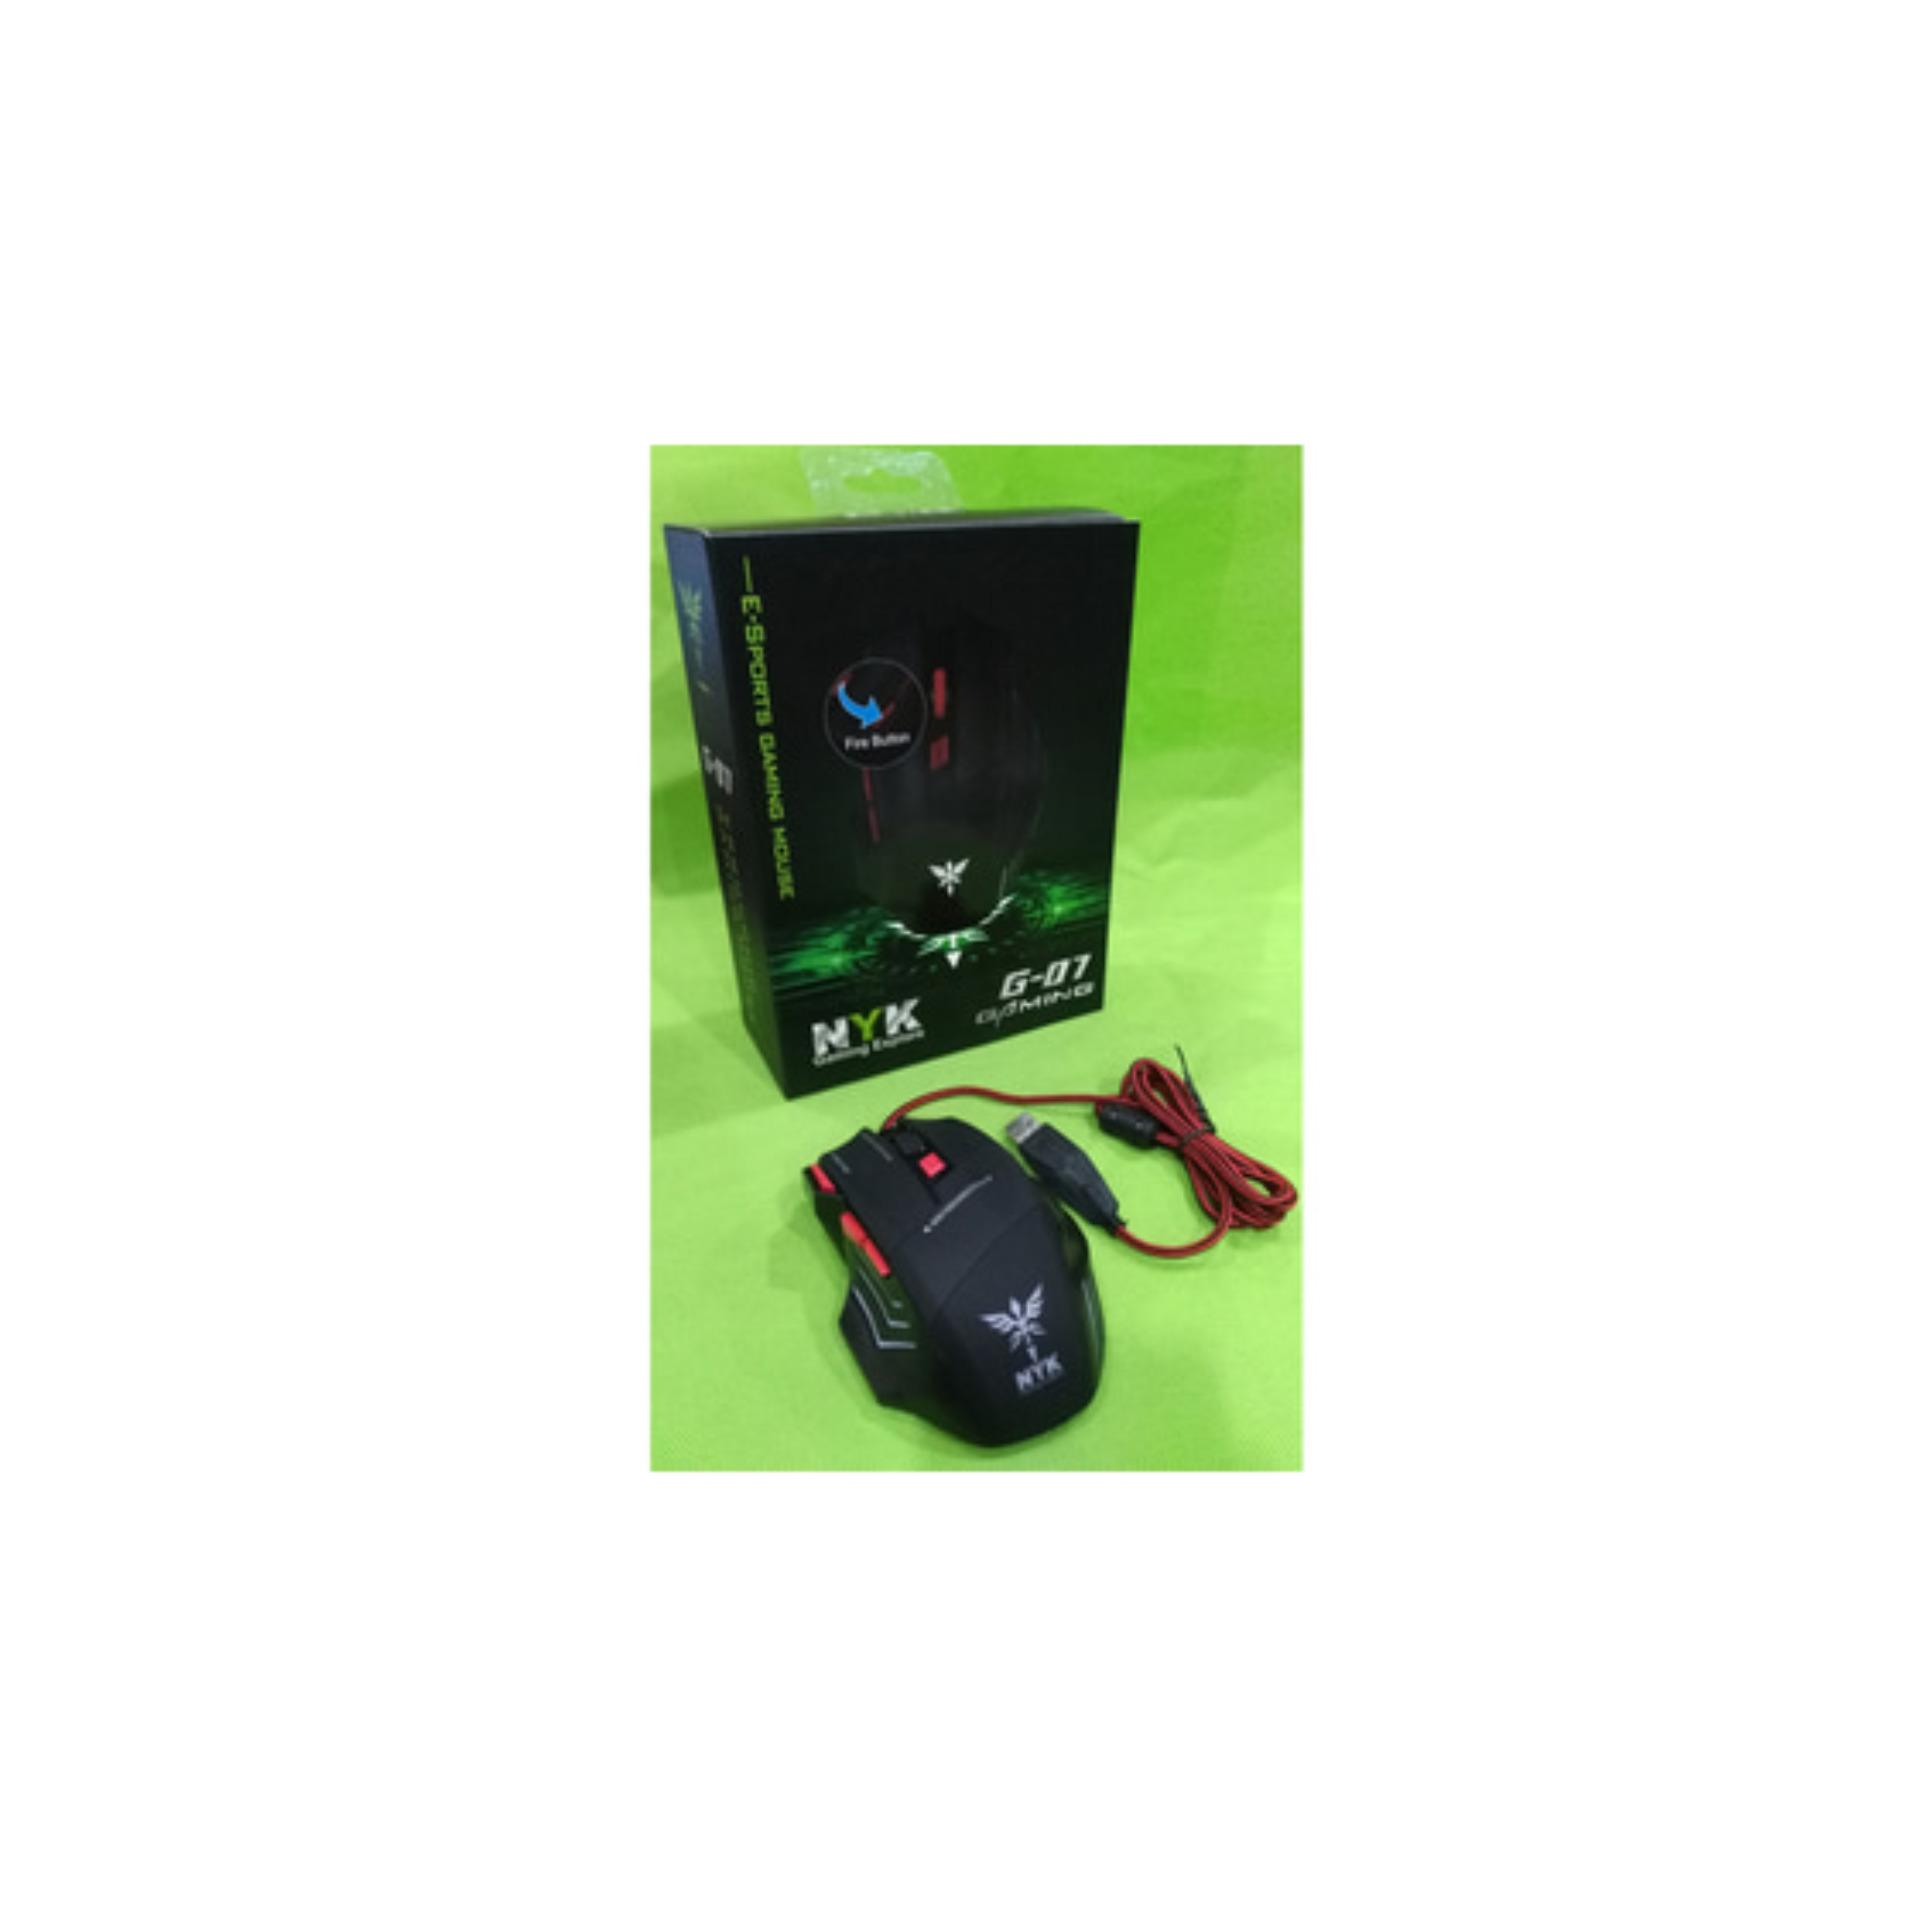 Sturdy Tp809 Keyboard Gaming Usb With Rainbow Led Hitam Daftar Nyk K 02 Mouse G 07 7d Technical Rgb Color